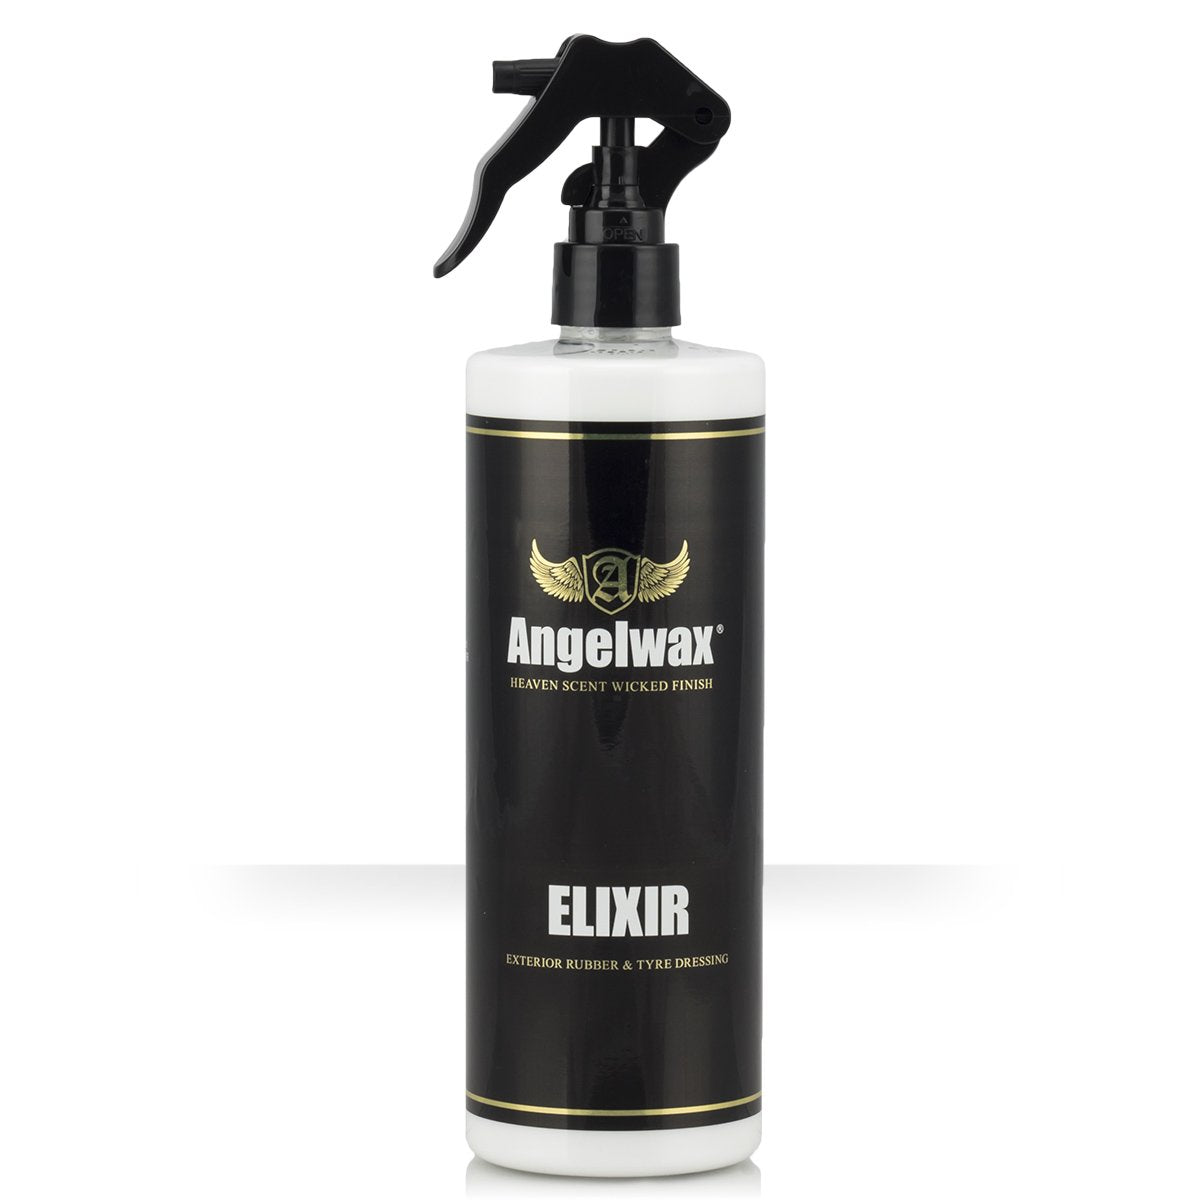 Angelwax Elixir Rubber & Tyre Dressing 500ml